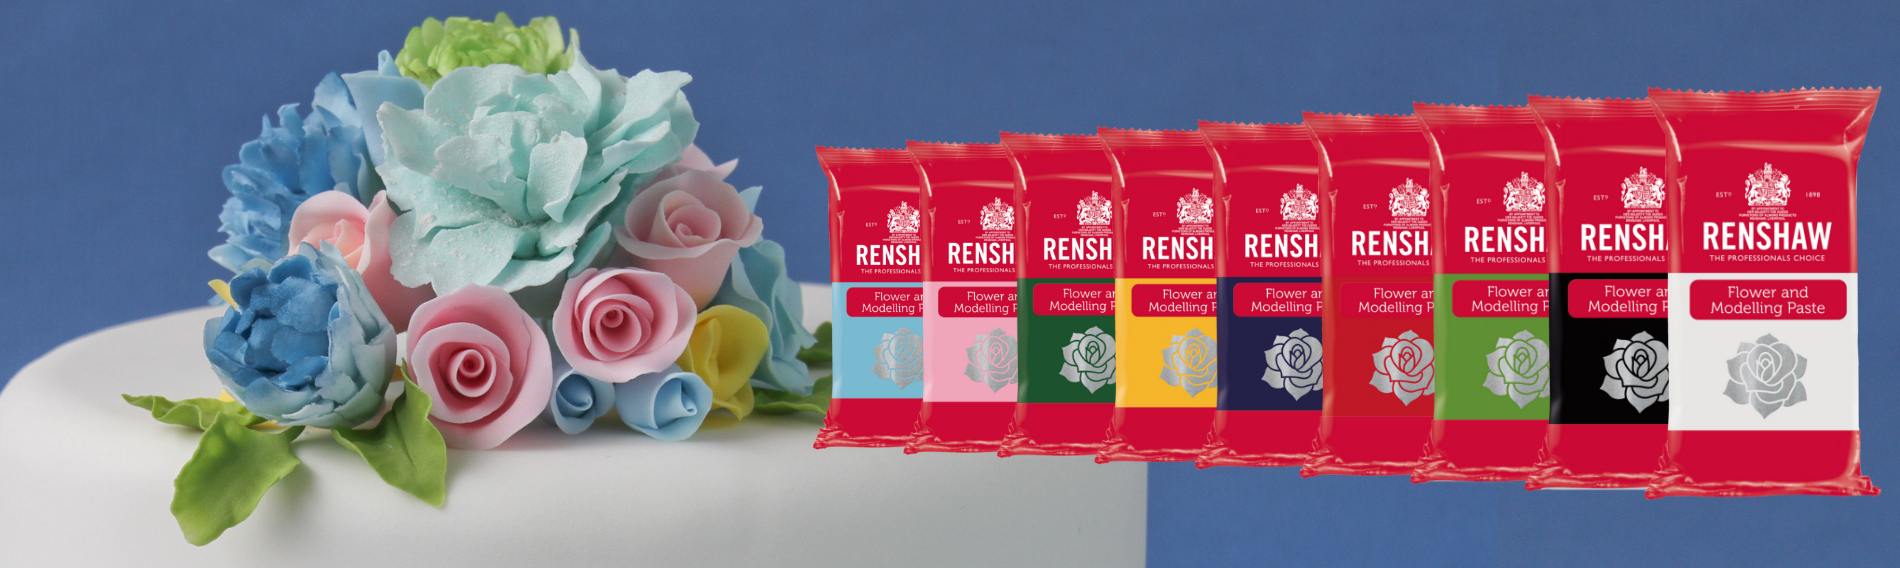 (OUT) Renshaw June Flower Paste